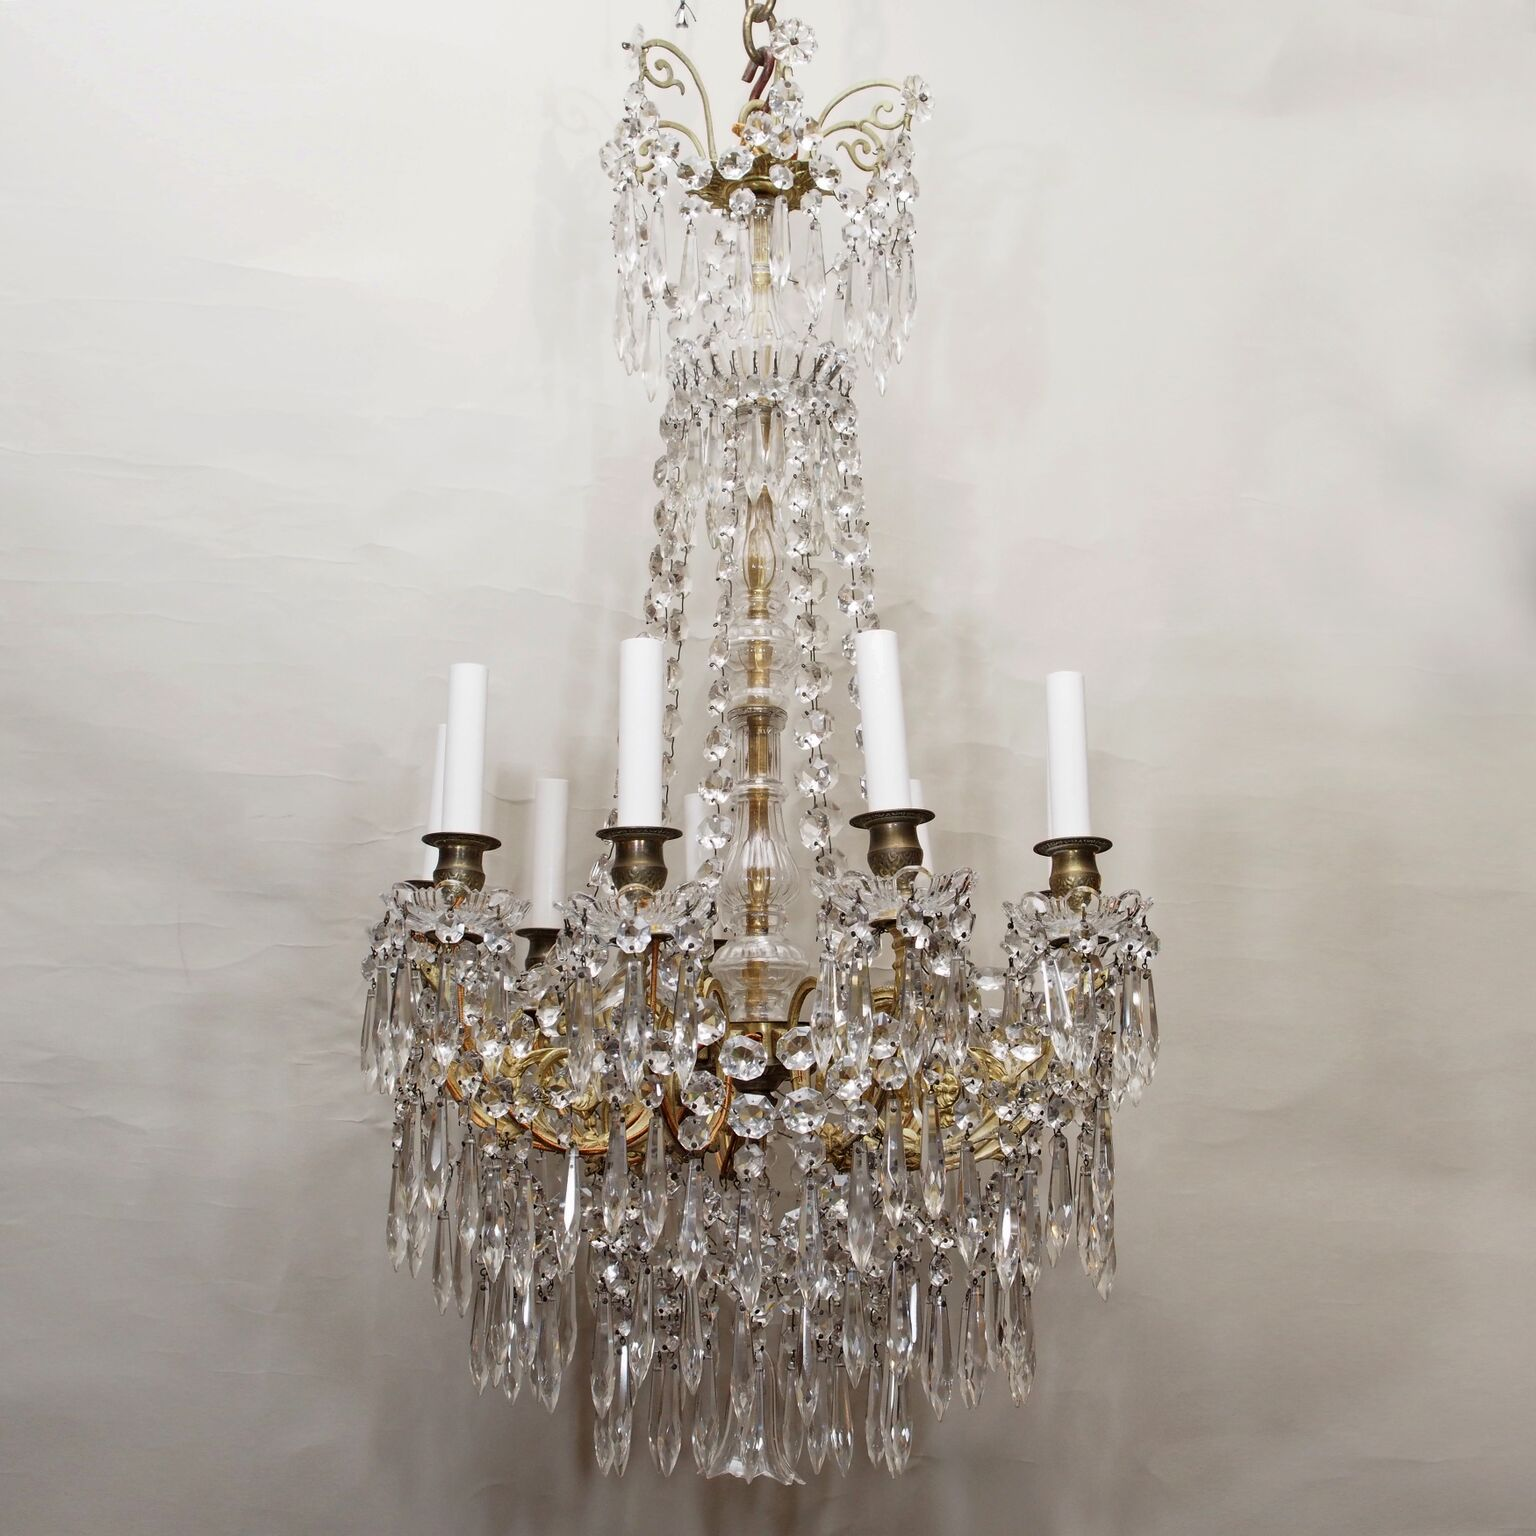 Antique richly draped signed baccarat crystal chandelier circa antique richly draped signed baccarat crystal chandelier circa 1885 1895 aloadofball Images